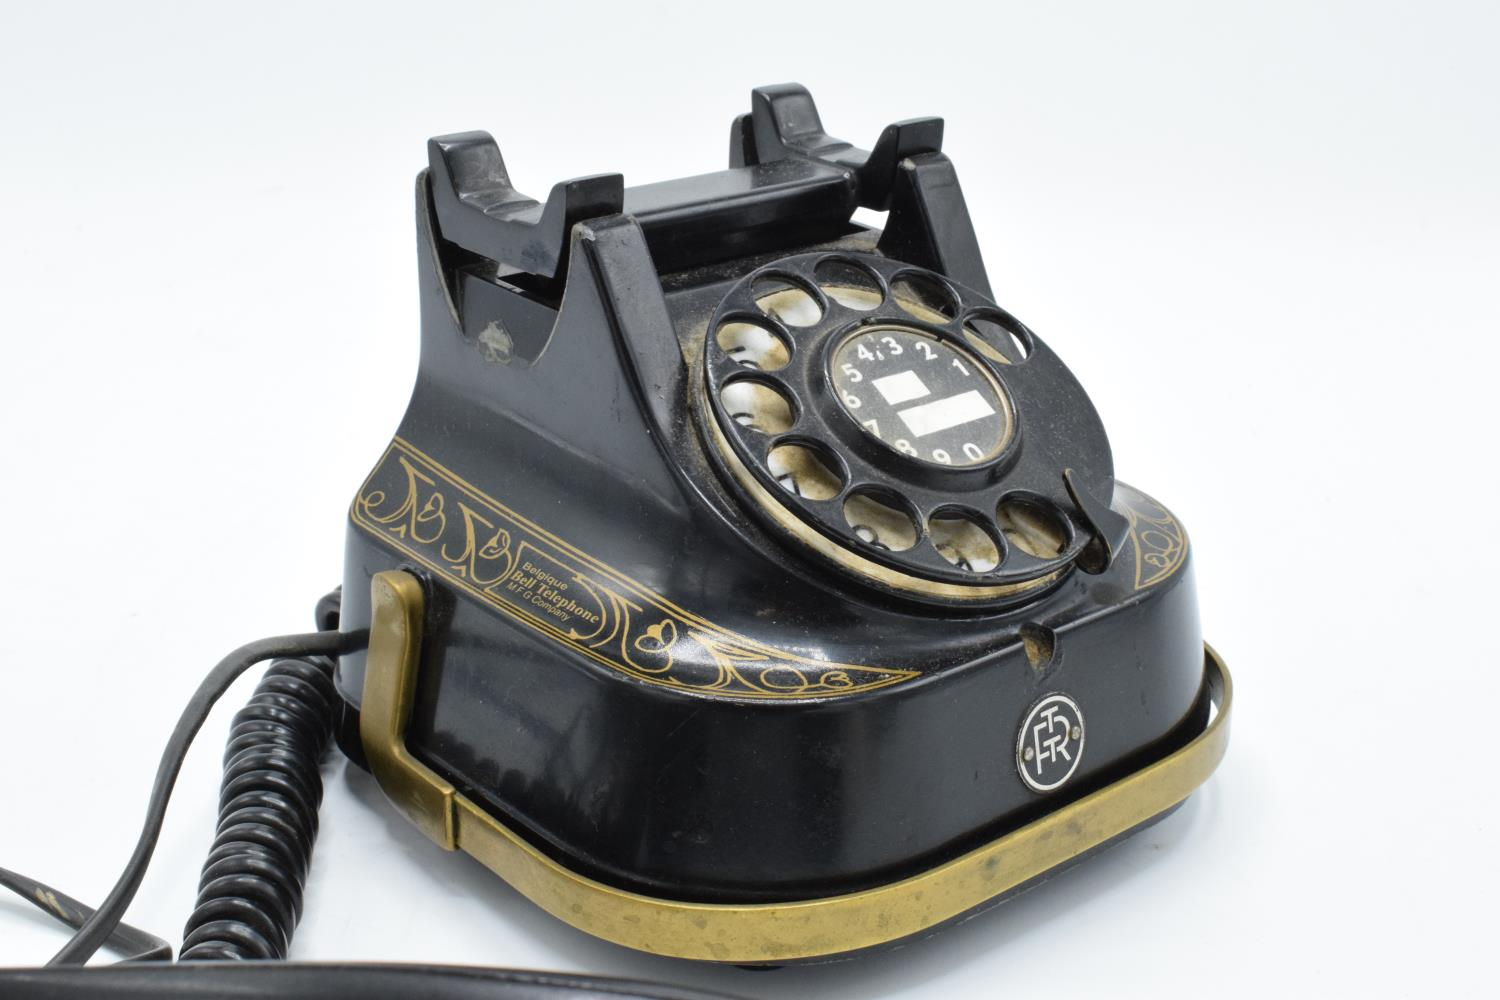 MFG Company Bell Telephone Belgique with Bakelite phone. Displays well. Untested. 16cm tall. - Image 4 of 7